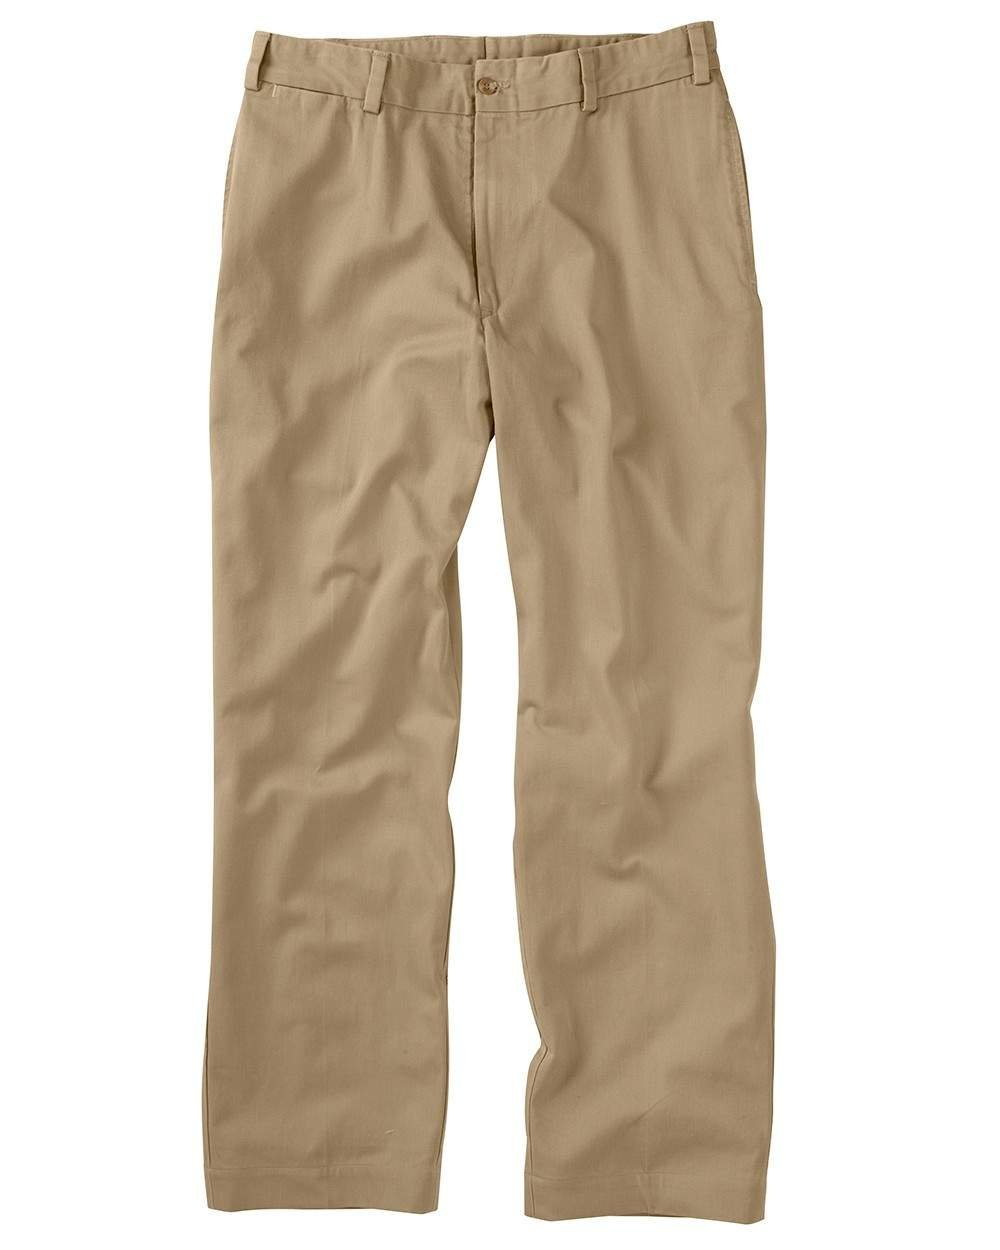 Bill's Khakis Original Twill M2 Pants (40, Khaki)